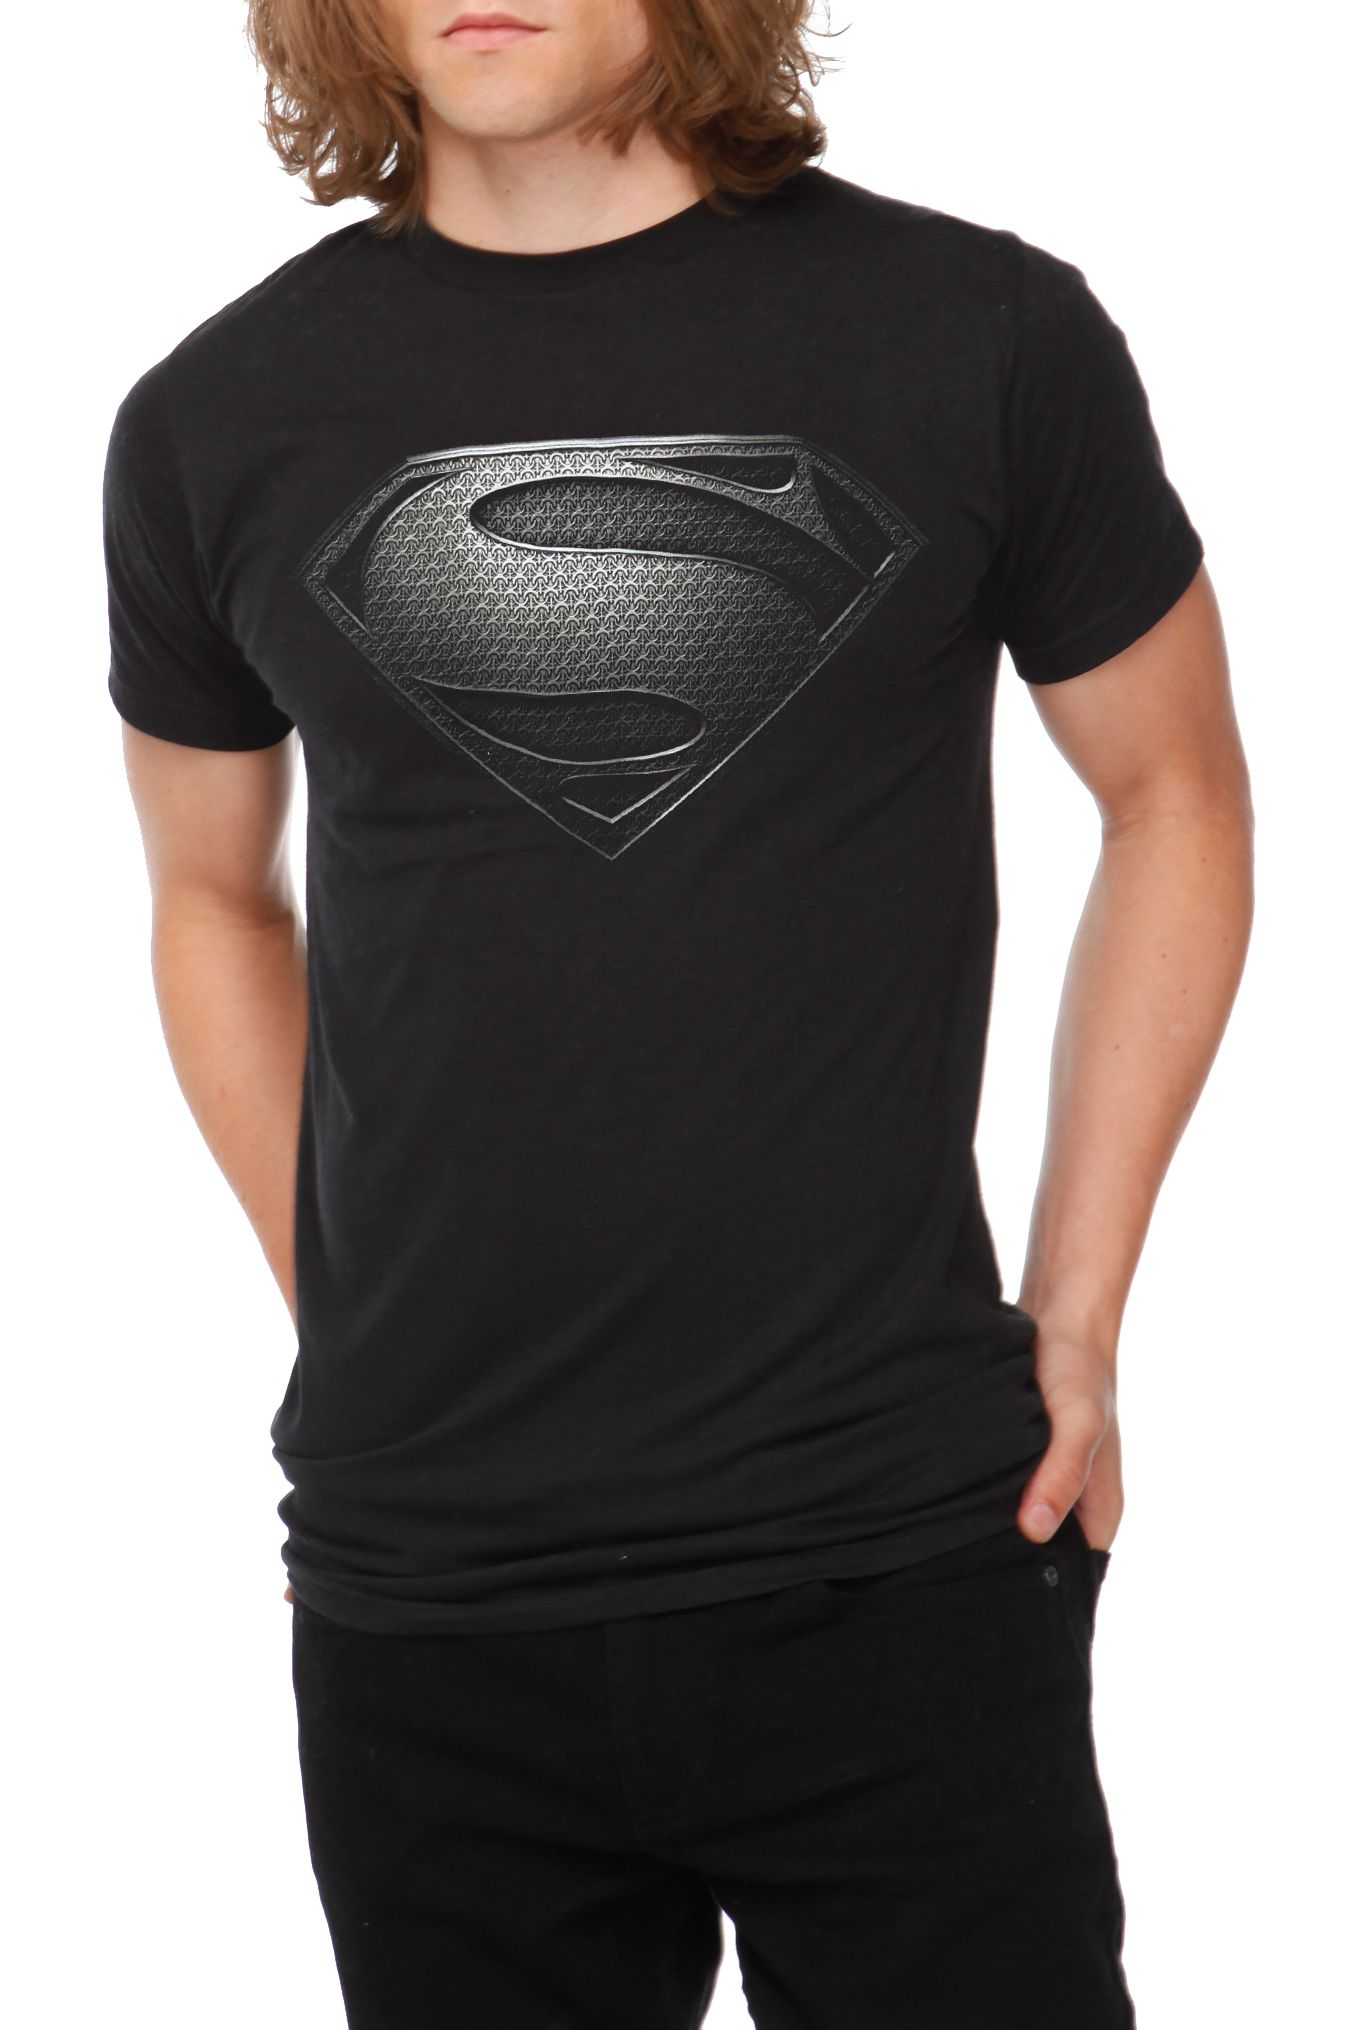 db599e4d1a79 DC Comics Superman Man Of Steel Silver Logo T-Shirt $20.50 | My ...